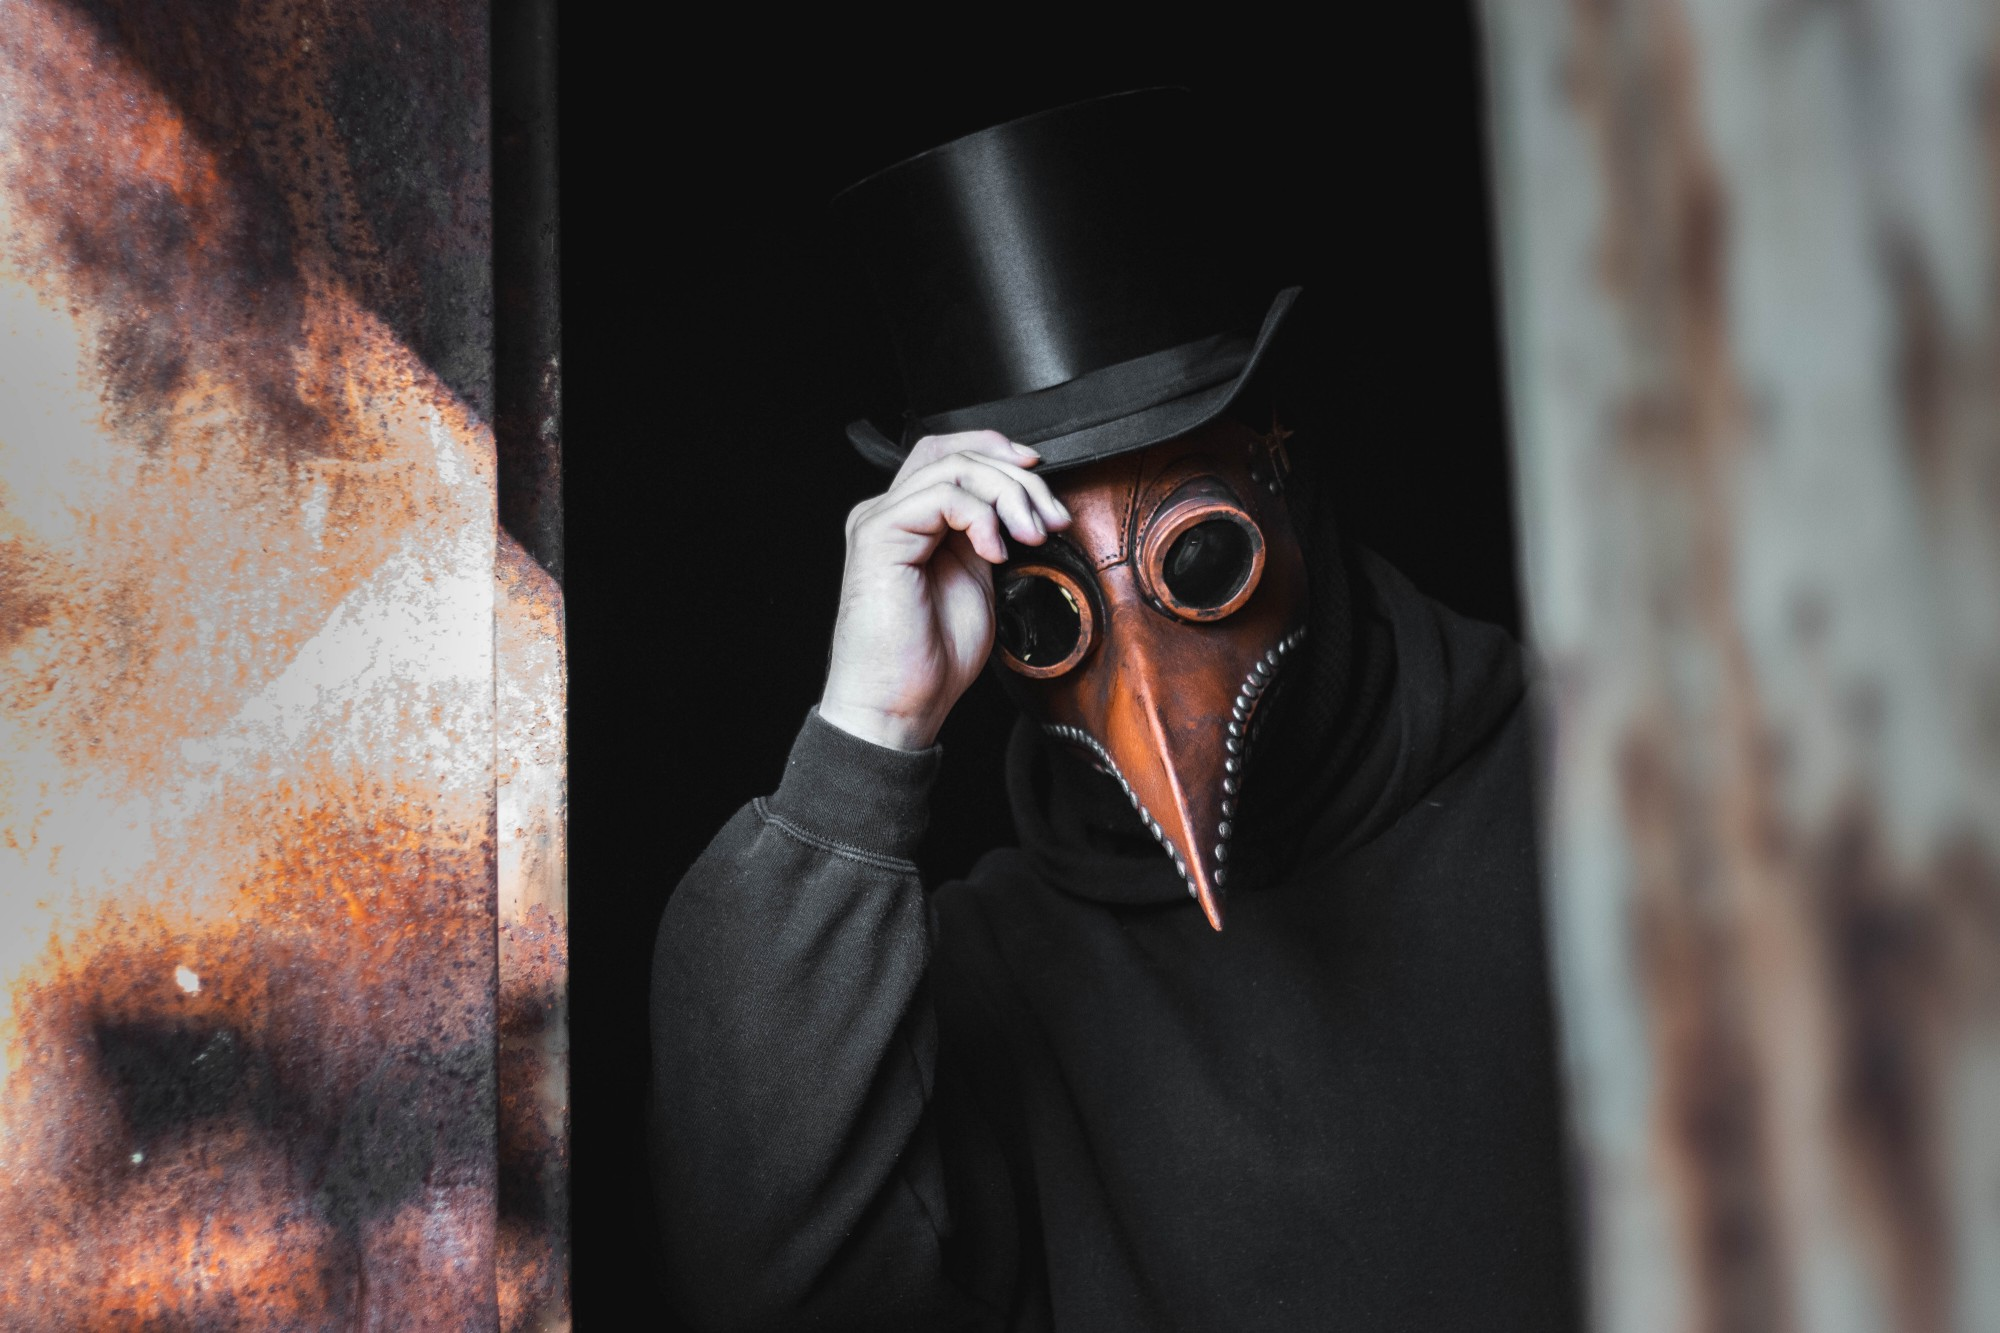 A person in a black hoodie wearing a top hat and a beaked mask in the style of headgear worn by doctors during the black plague.